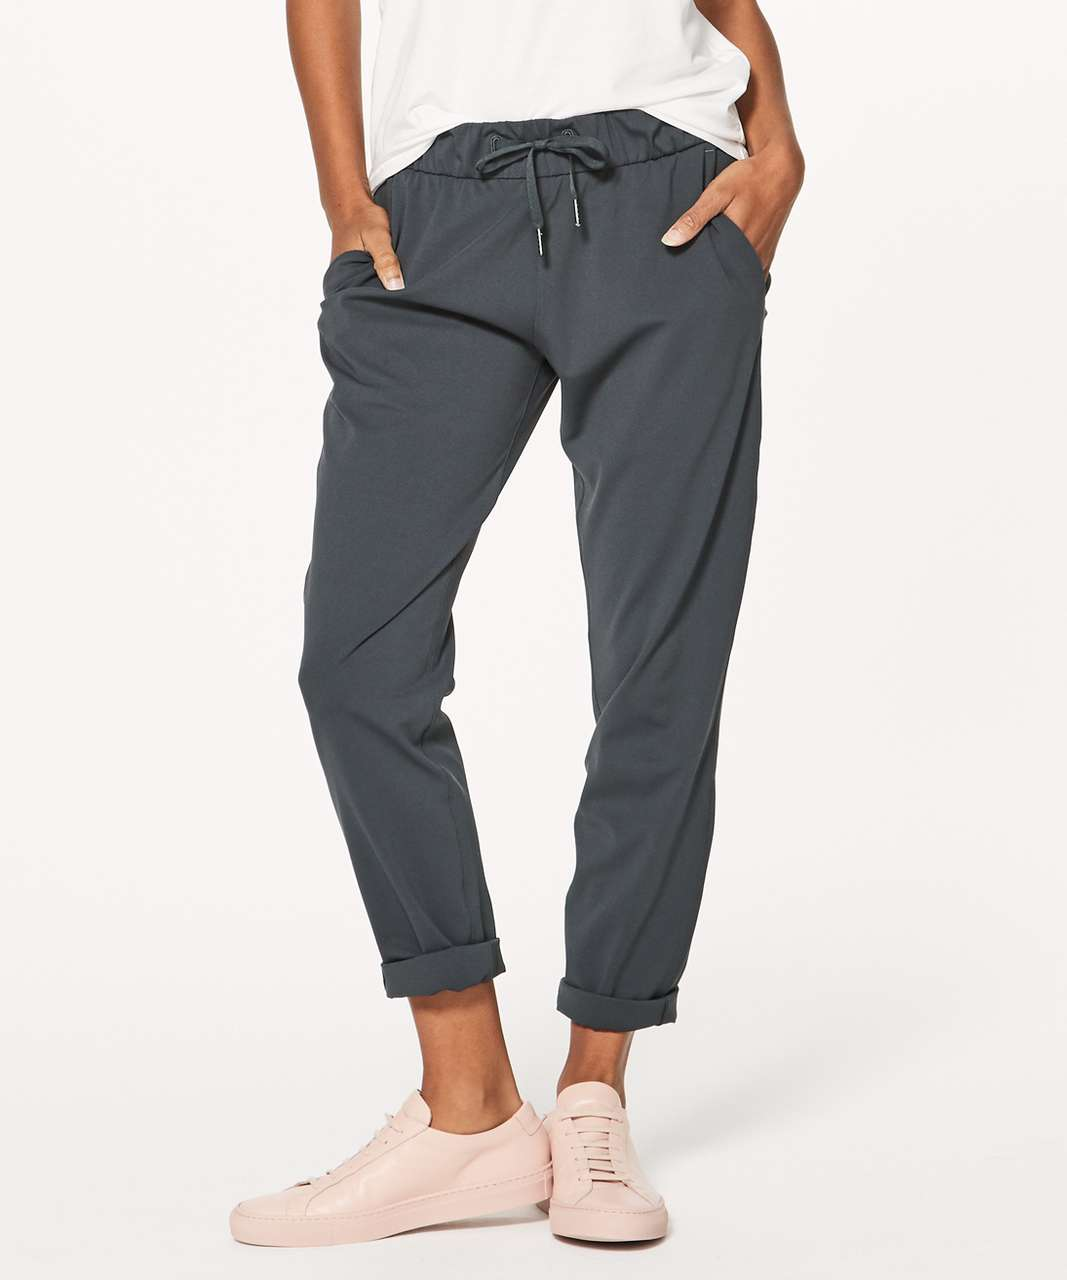 "Lululemon On The Fly Pant 28"" - Melanite"